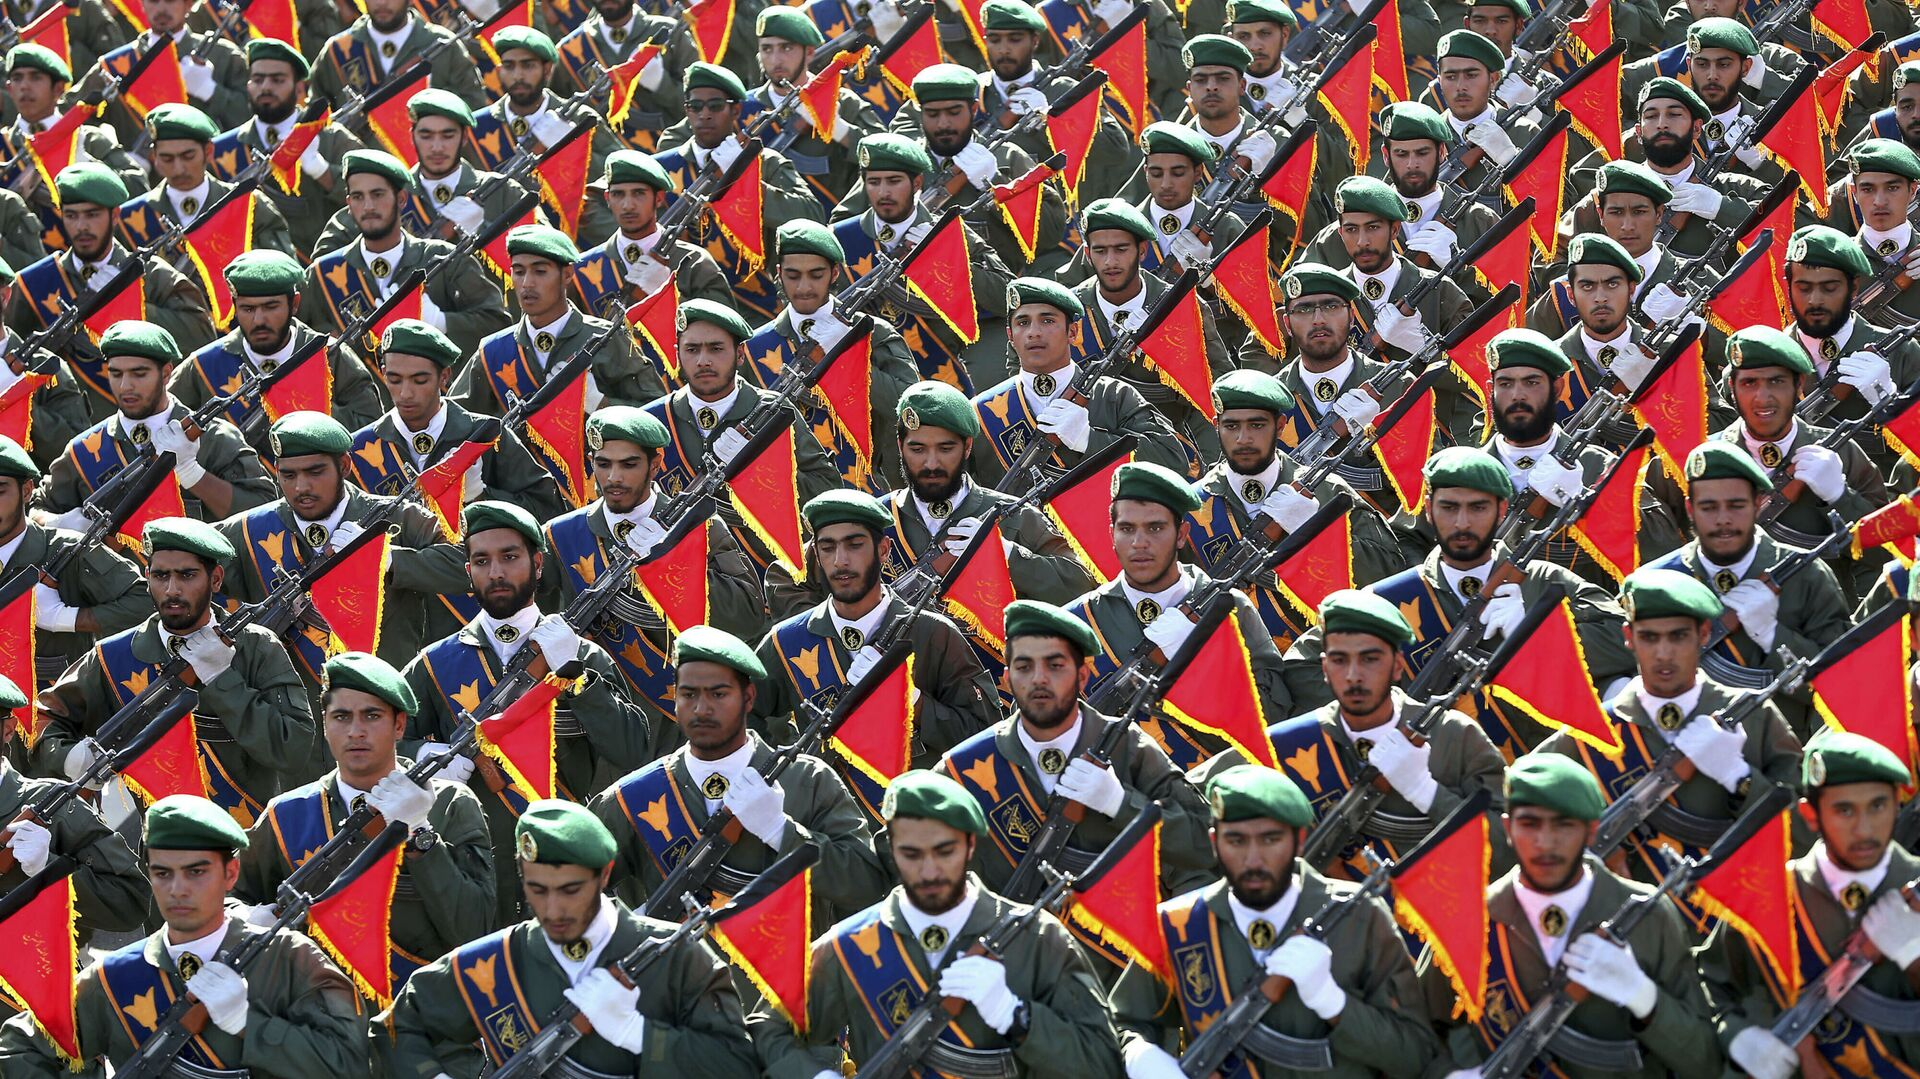 In this Sept. 21, 2016 file photo, Iran's Revolutionary Guard troops march in a military parade marking the 36th anniversary of Iraq's 1980 invasion of Iran, in front of the shrine of late revolutionary founder Ayatollah Khomeini, just outside Tehran, Iran.  - Sputnik International, 1920, 29.05.2021